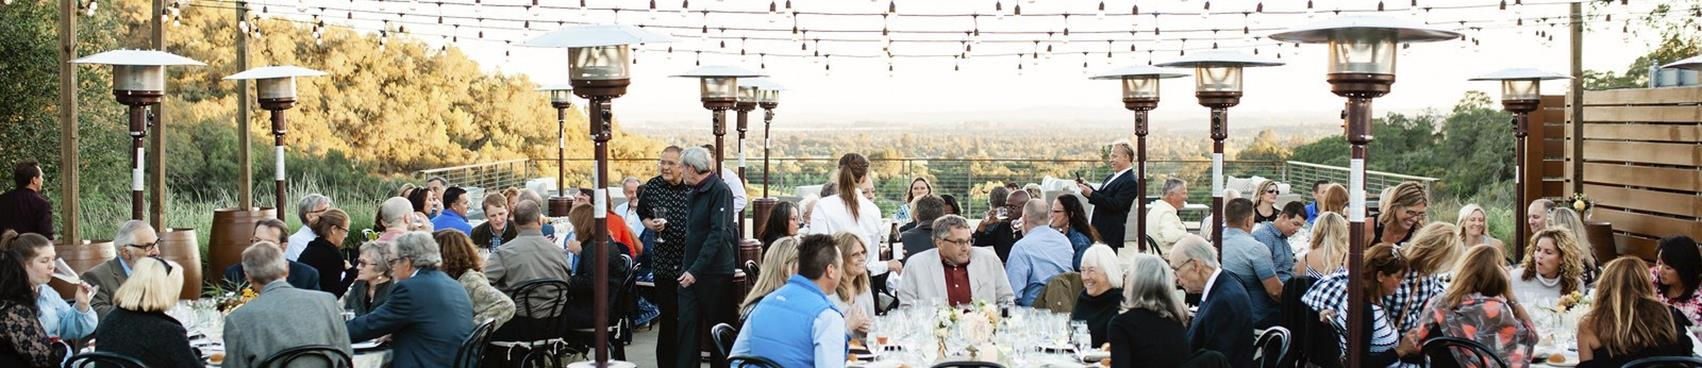 Purchase Tickets to Harvest Winemaker's Dinner at Notre Vue Estate Wine Group on CellarPass